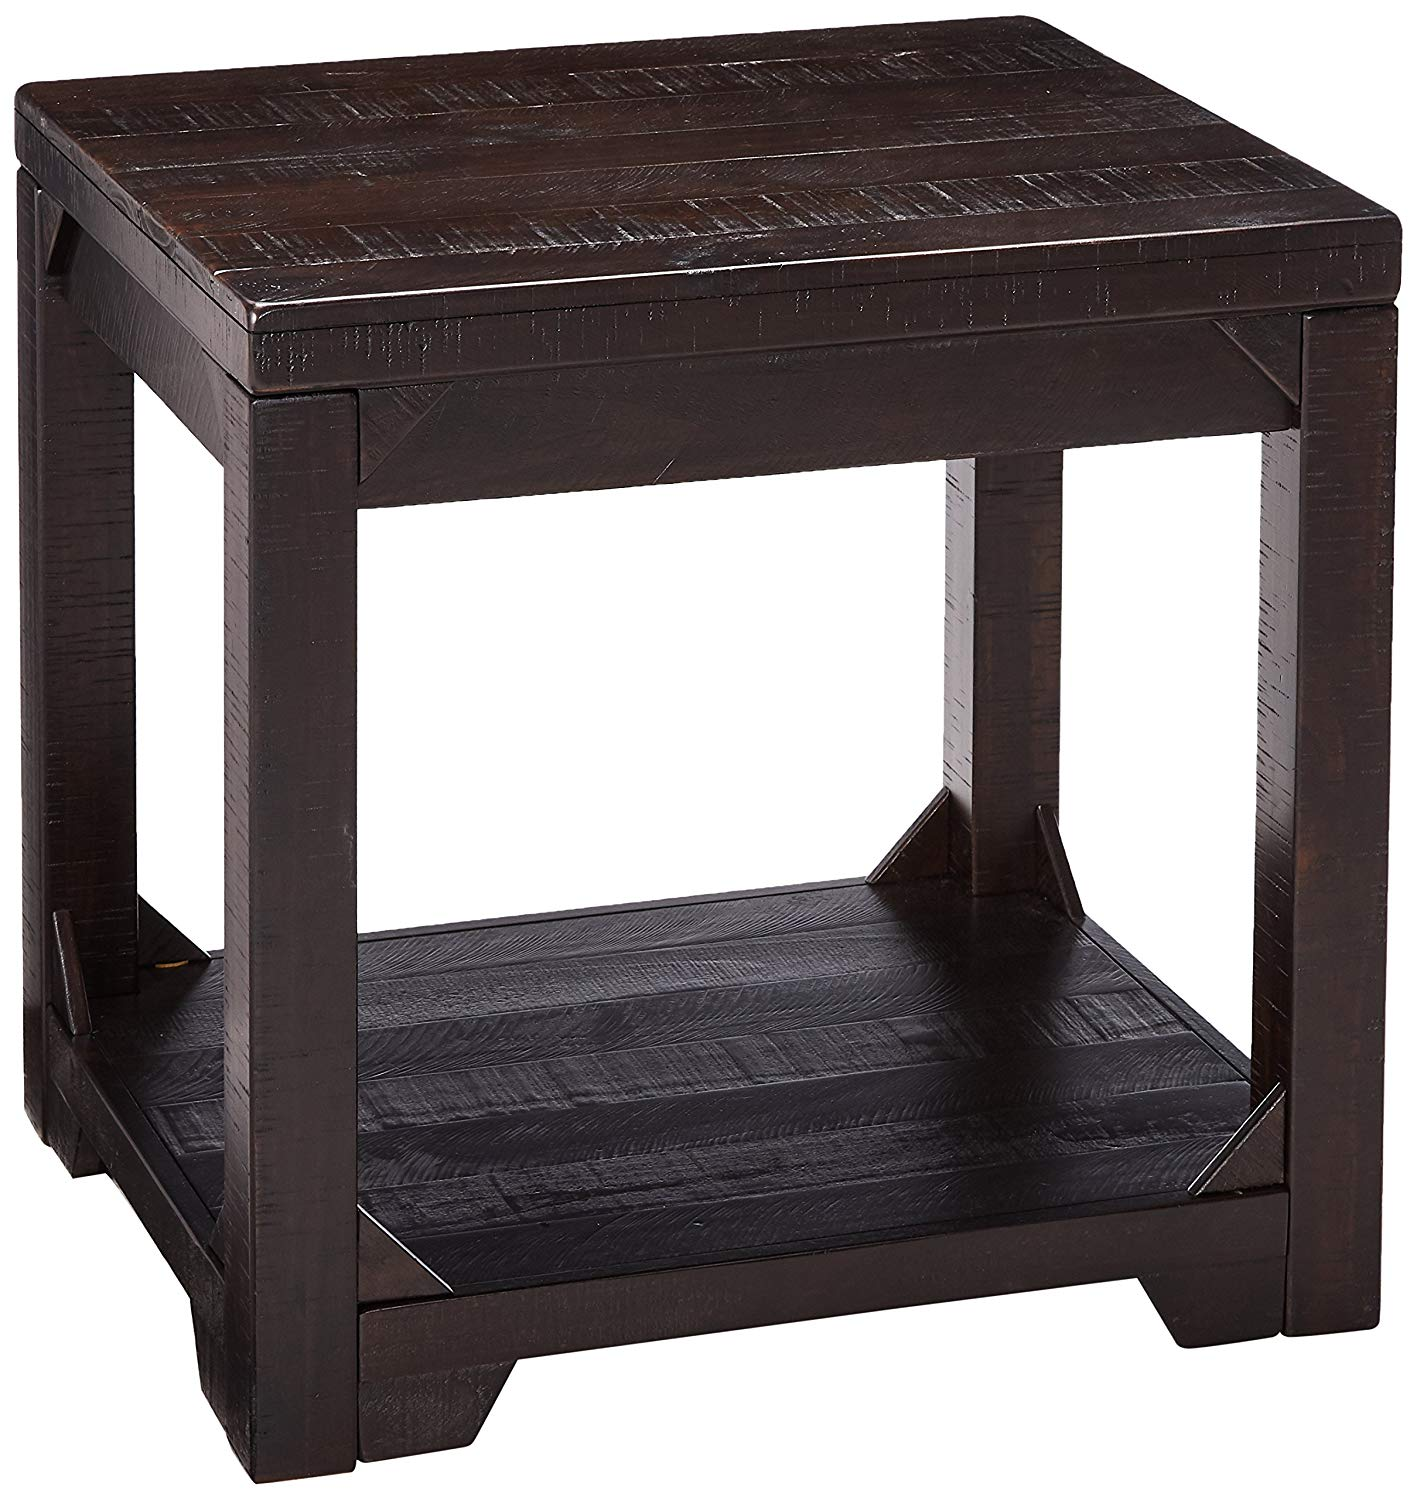 signature design ashley rectangular end table accent rustic brown kitchen dining high back chair small retro sofa mosaic patio furniture ikea living room chairs pagoda garden